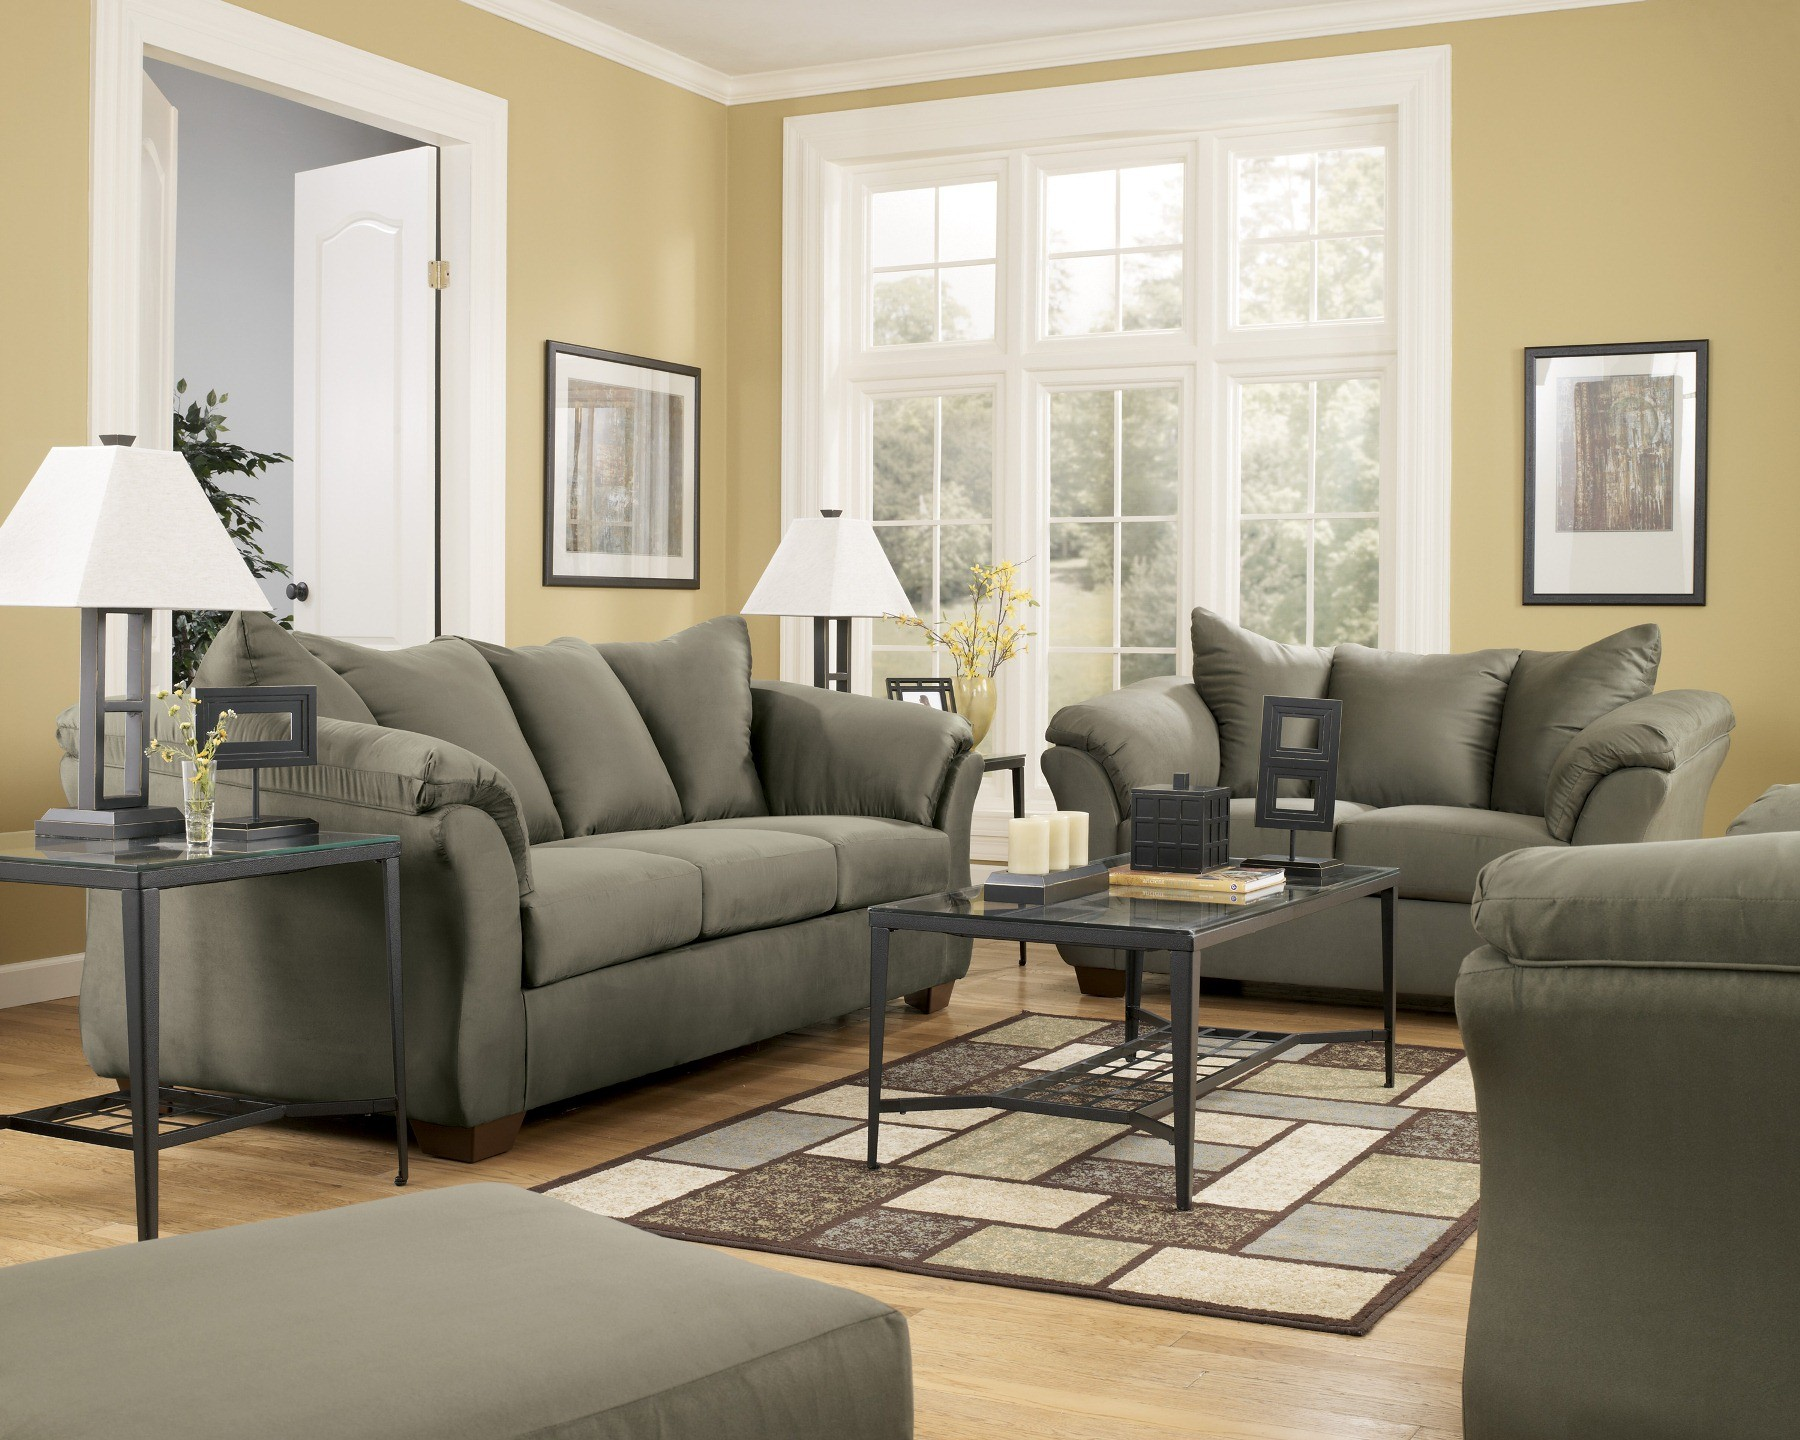 Darcy Sage Living Room Set From Ashley 75003 Coleman